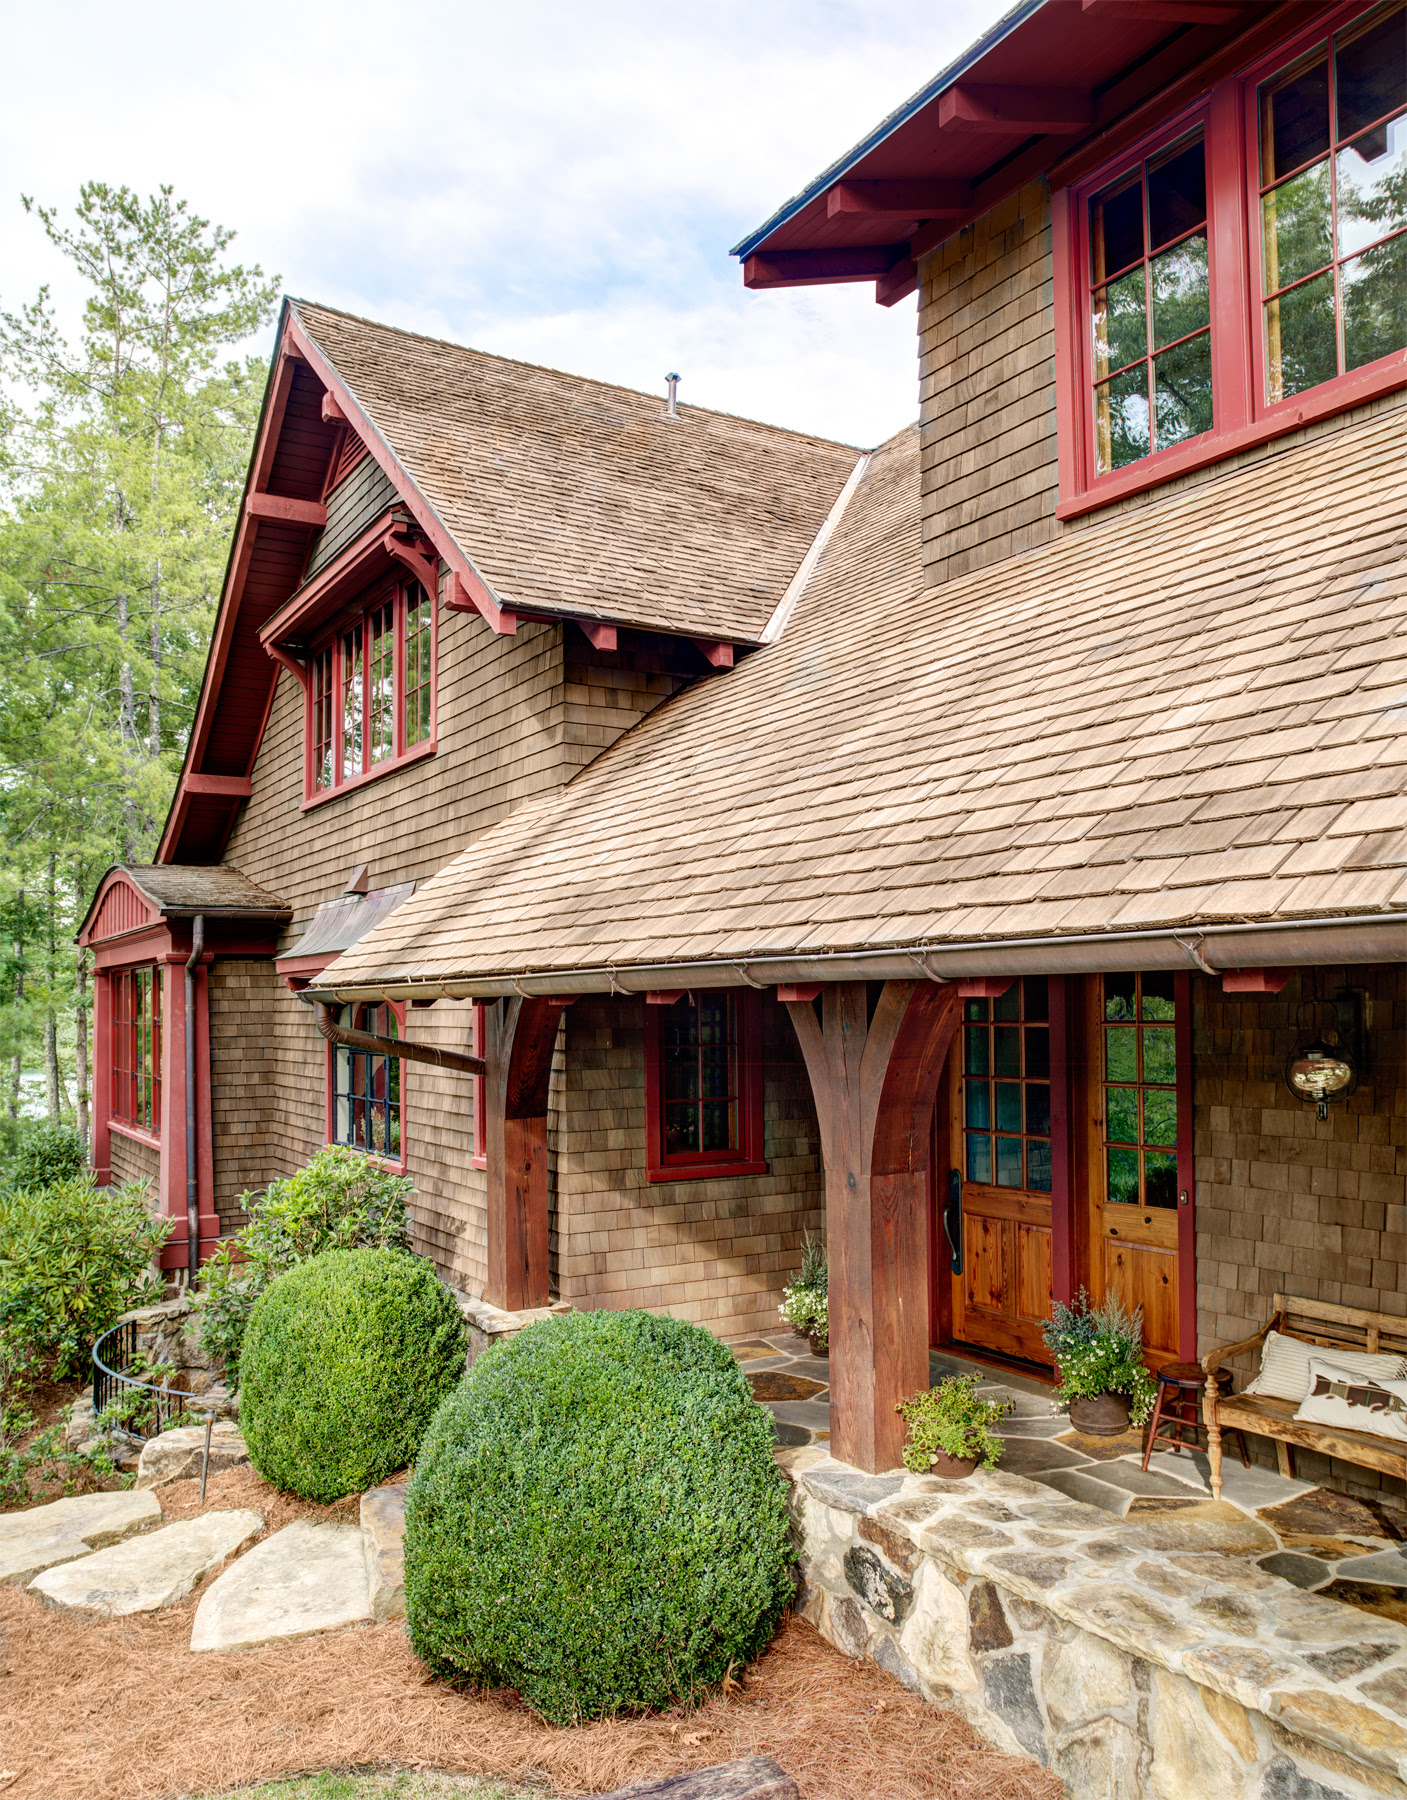 South Carolina Lake House Cabin  Rustic and Timeless Cabin Decorating Ideas